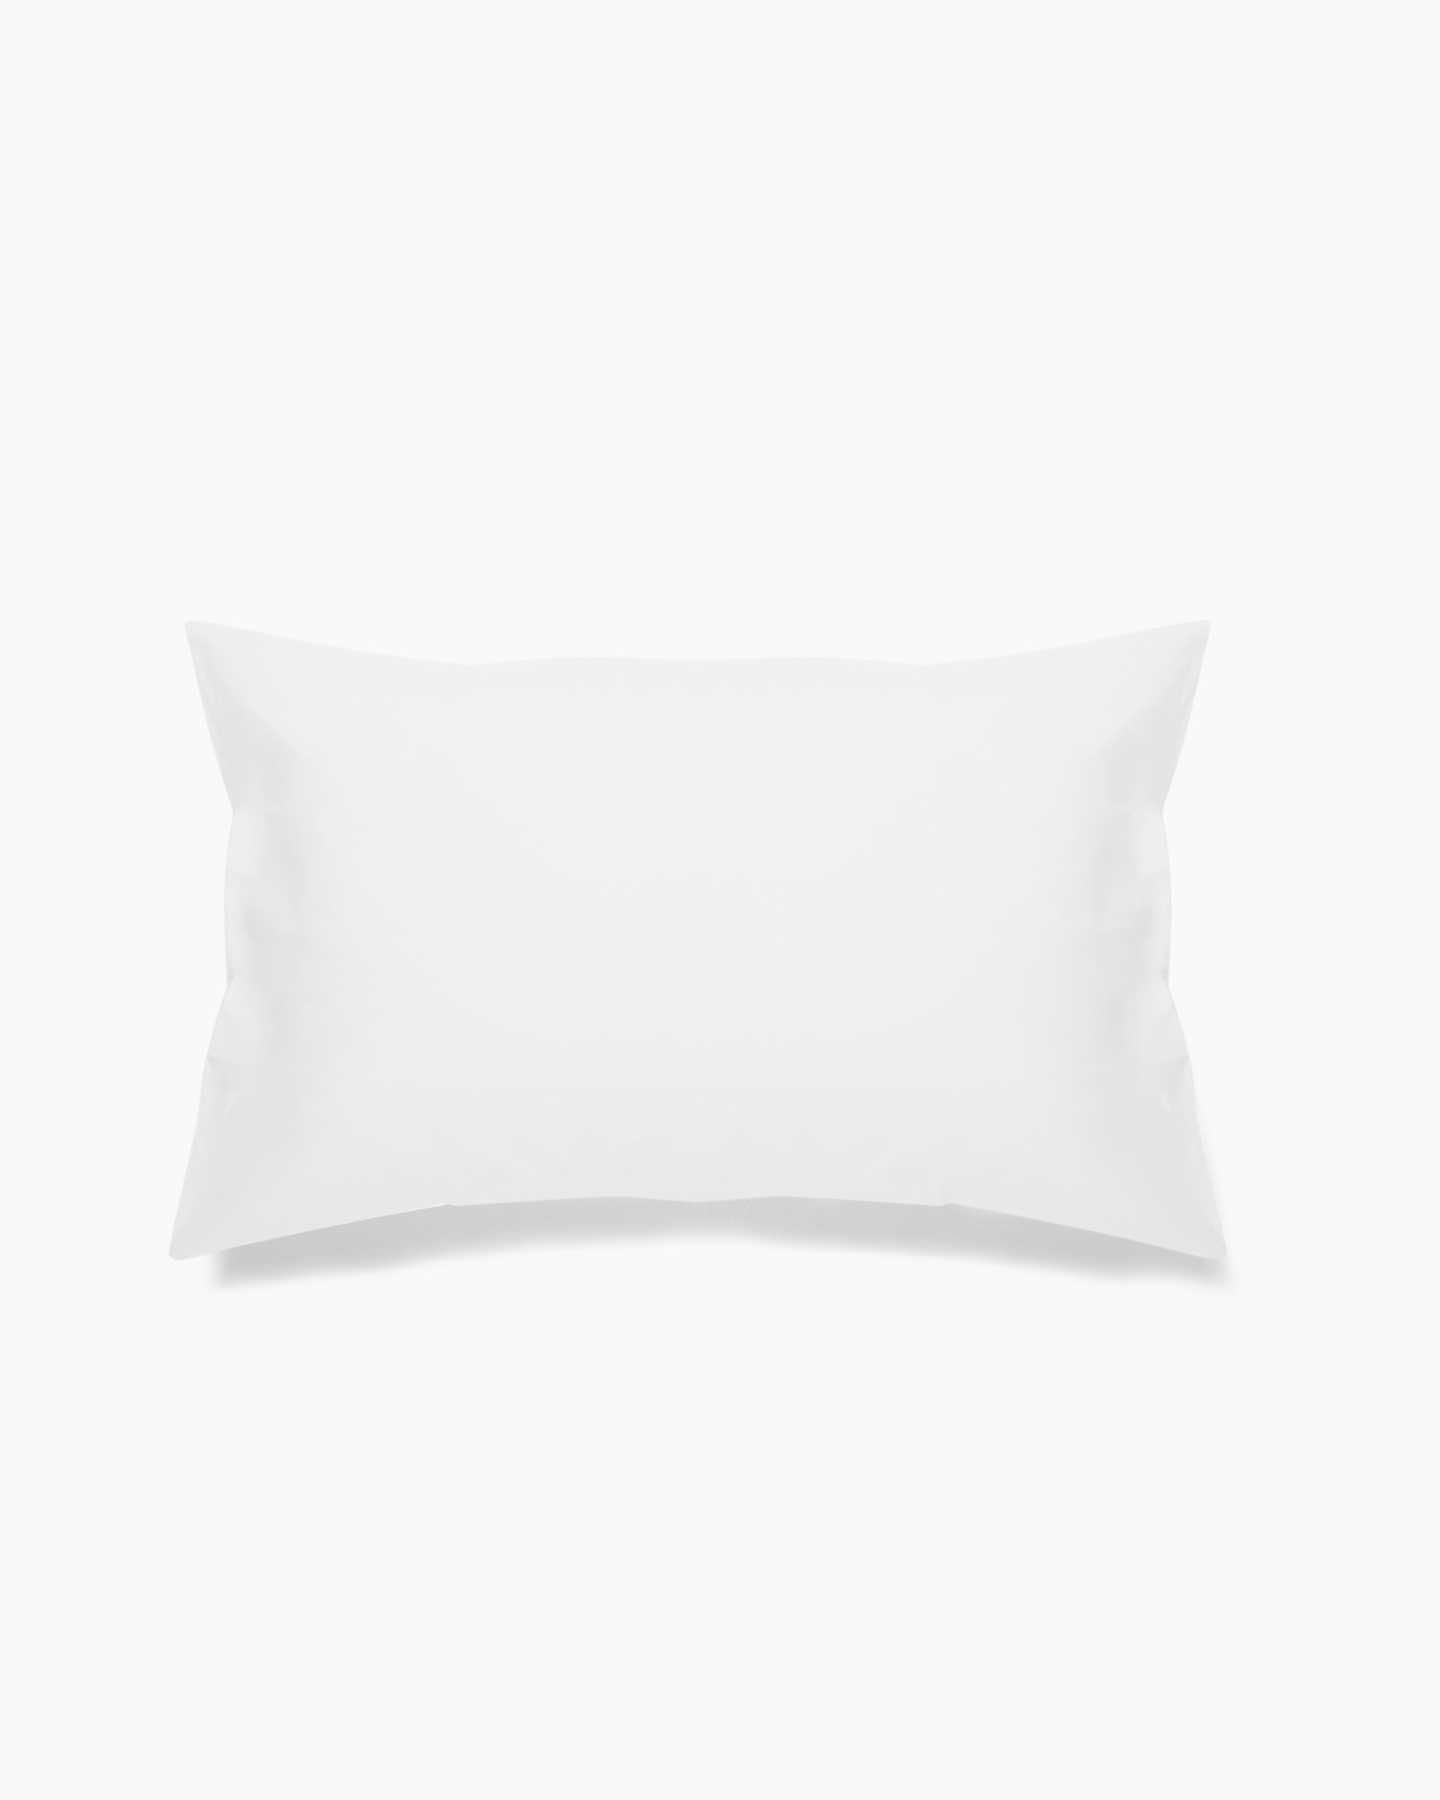 Organic Percale Luxe Pillowcases - White